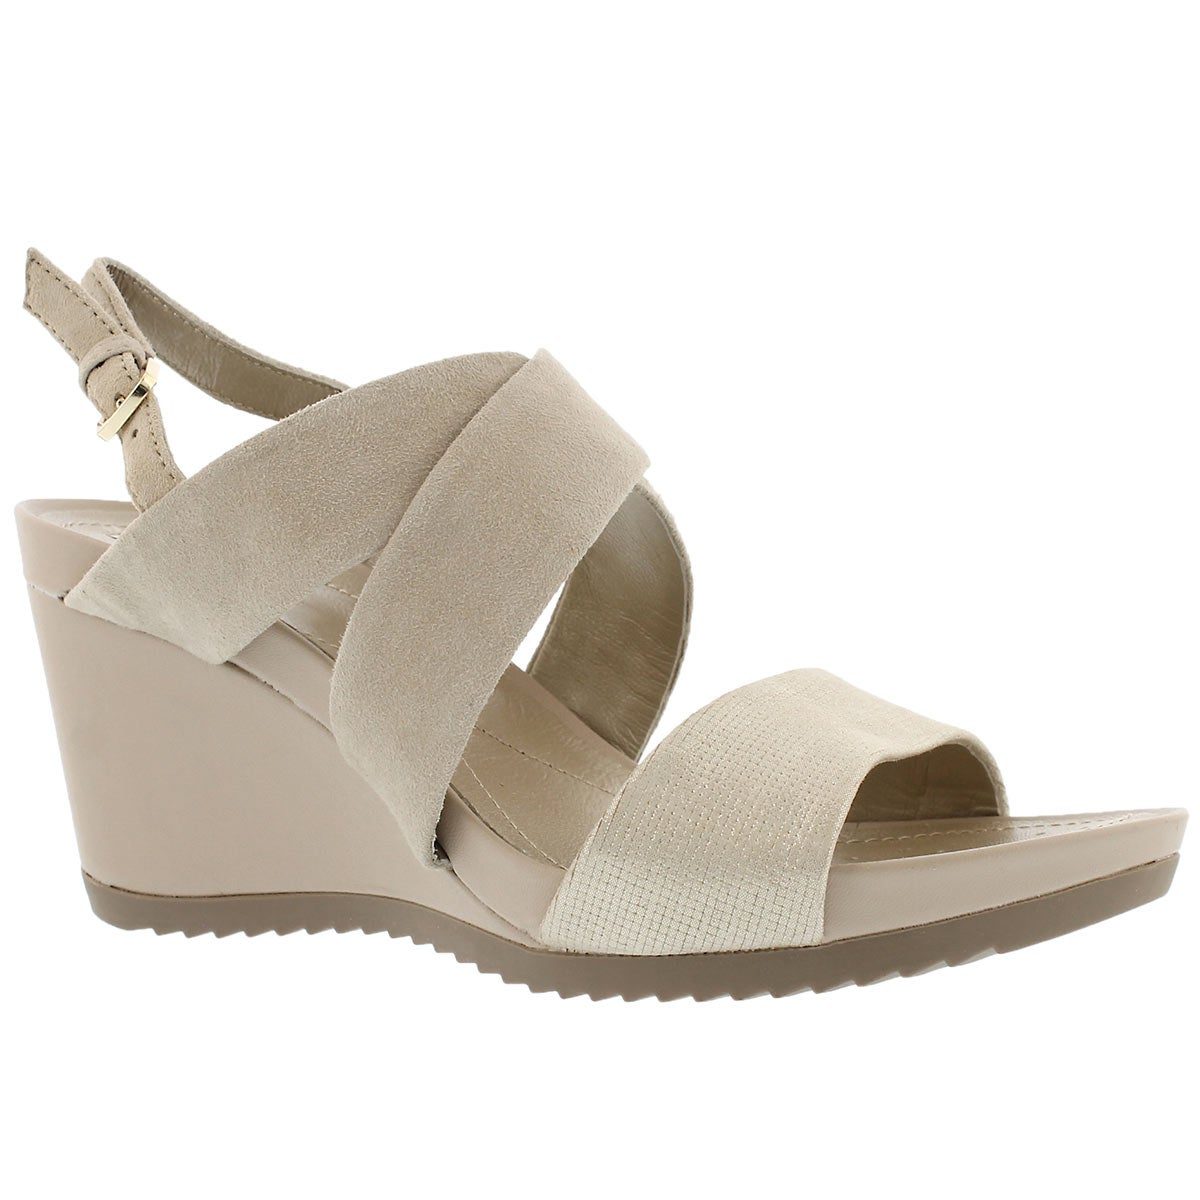 Women's NEW RORIE A taupe/gold wedge sandals